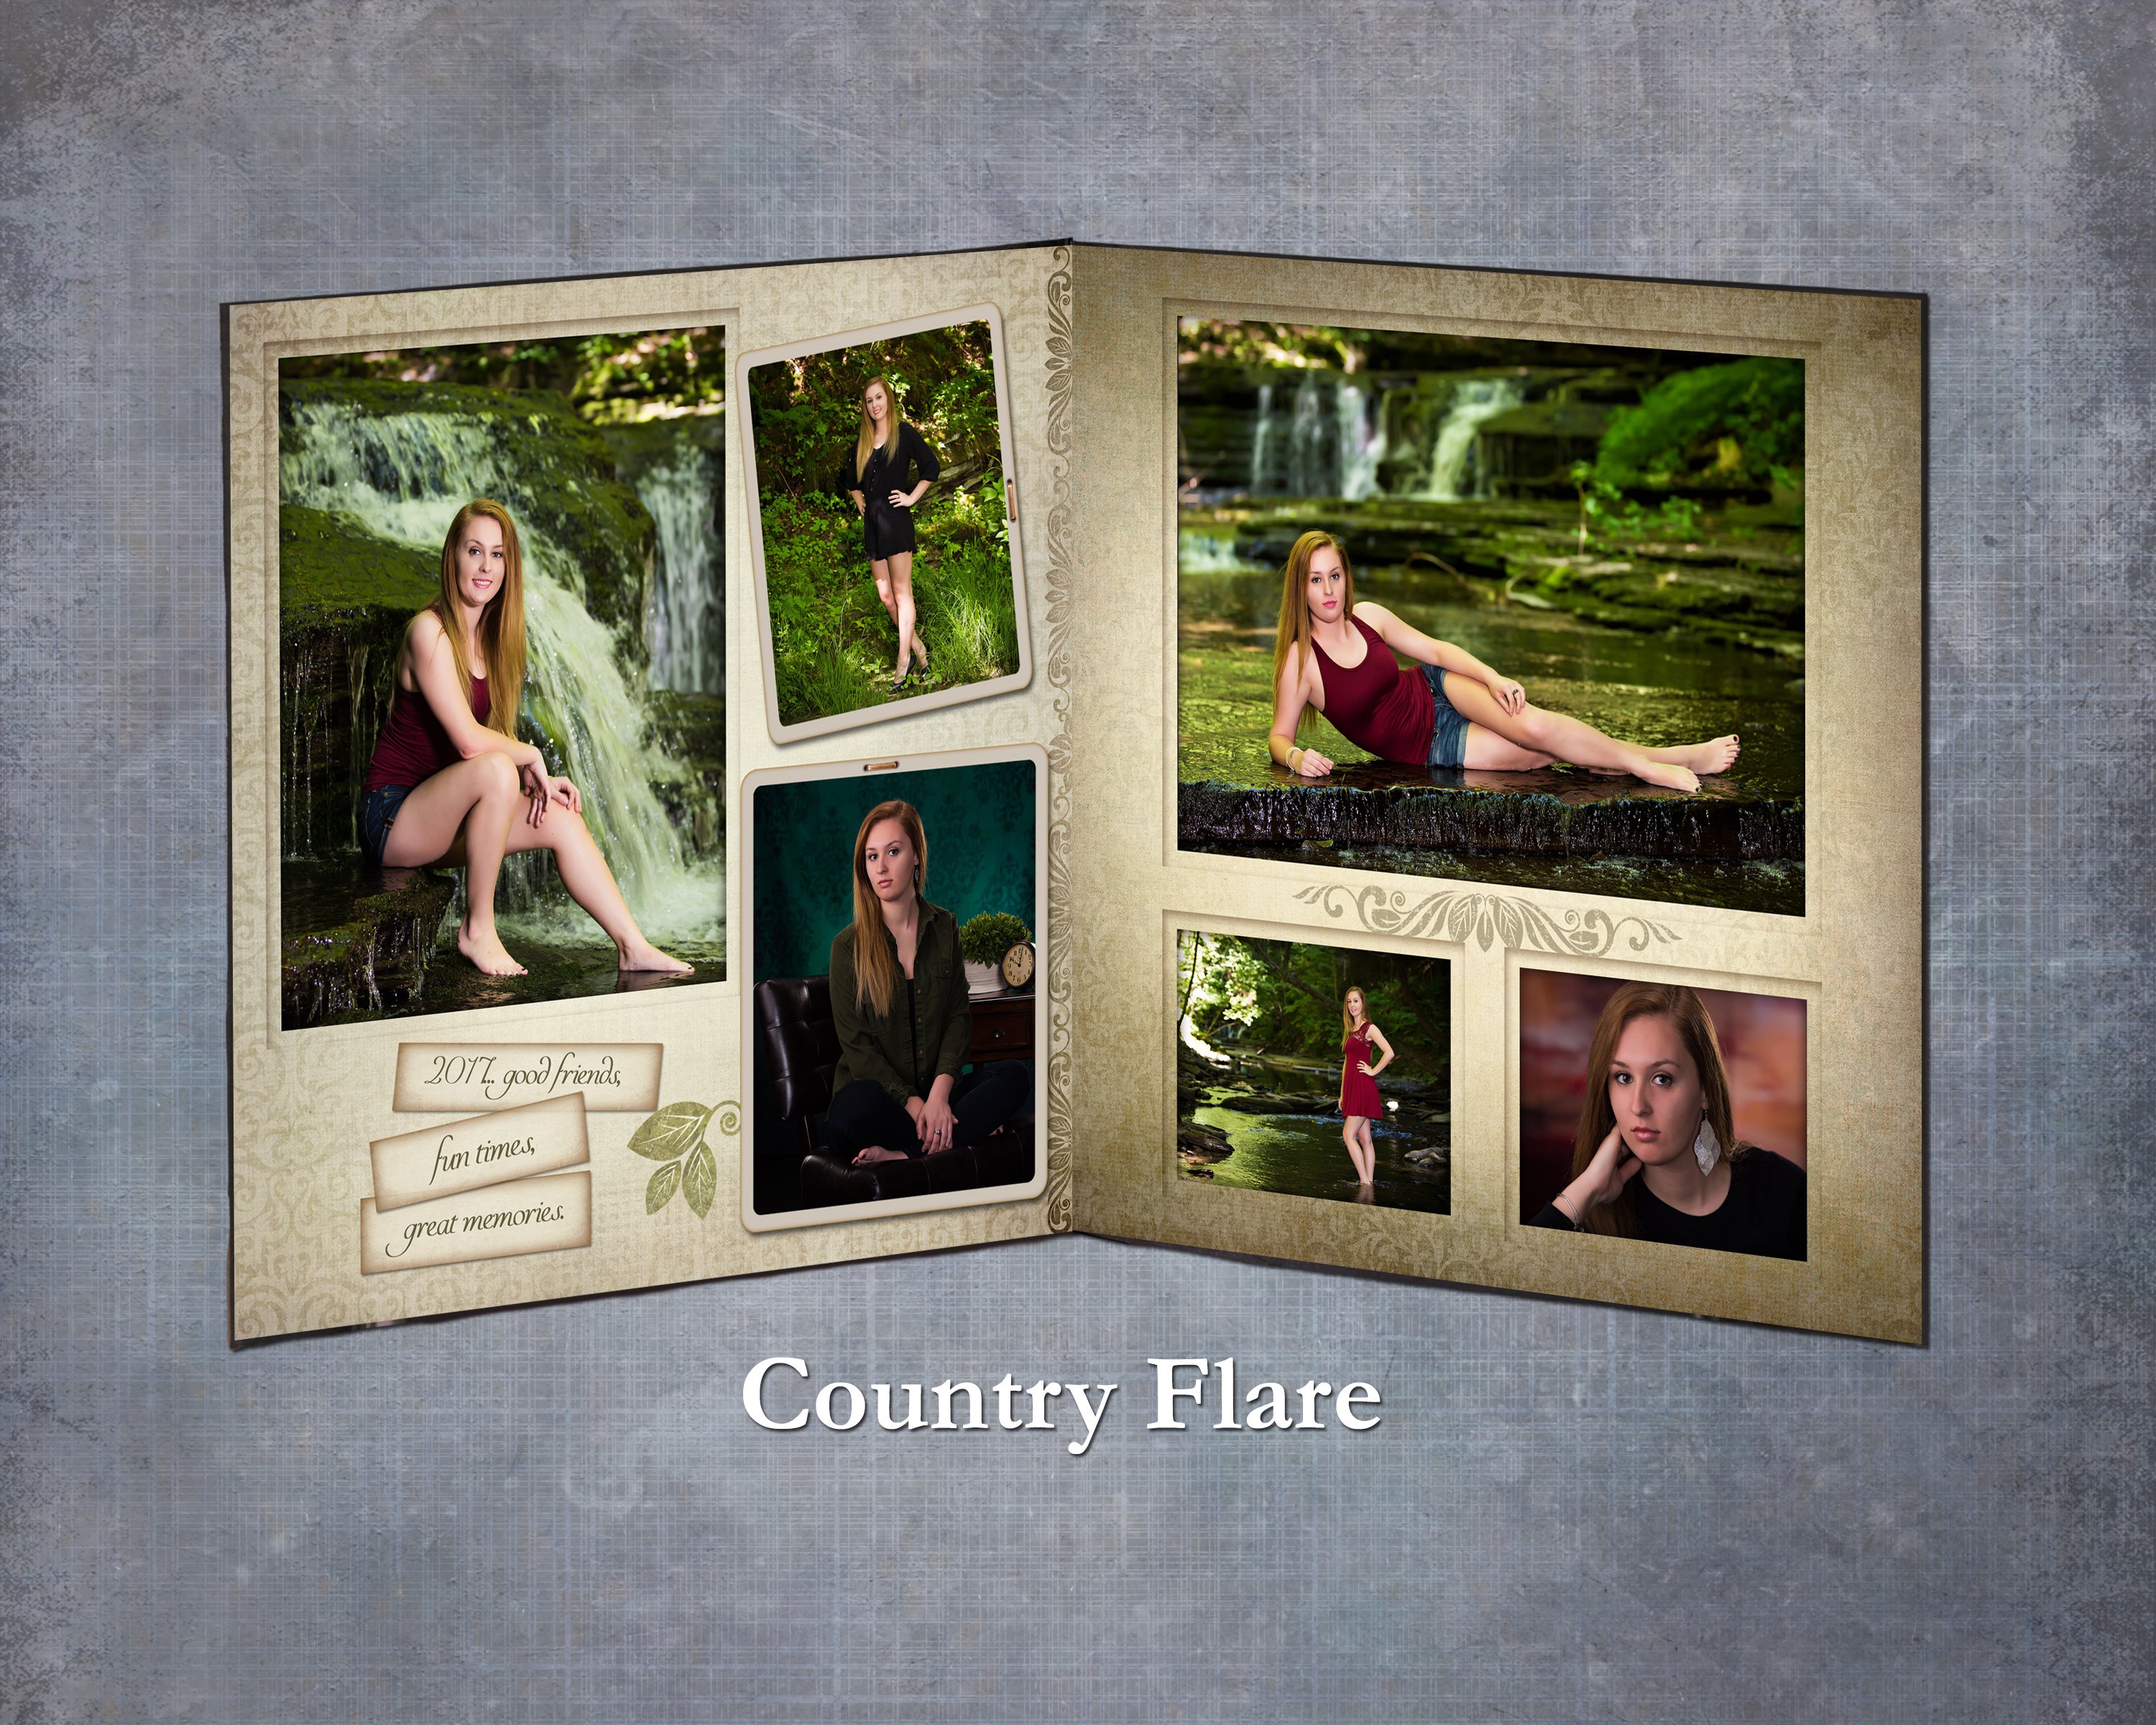 Country Flare